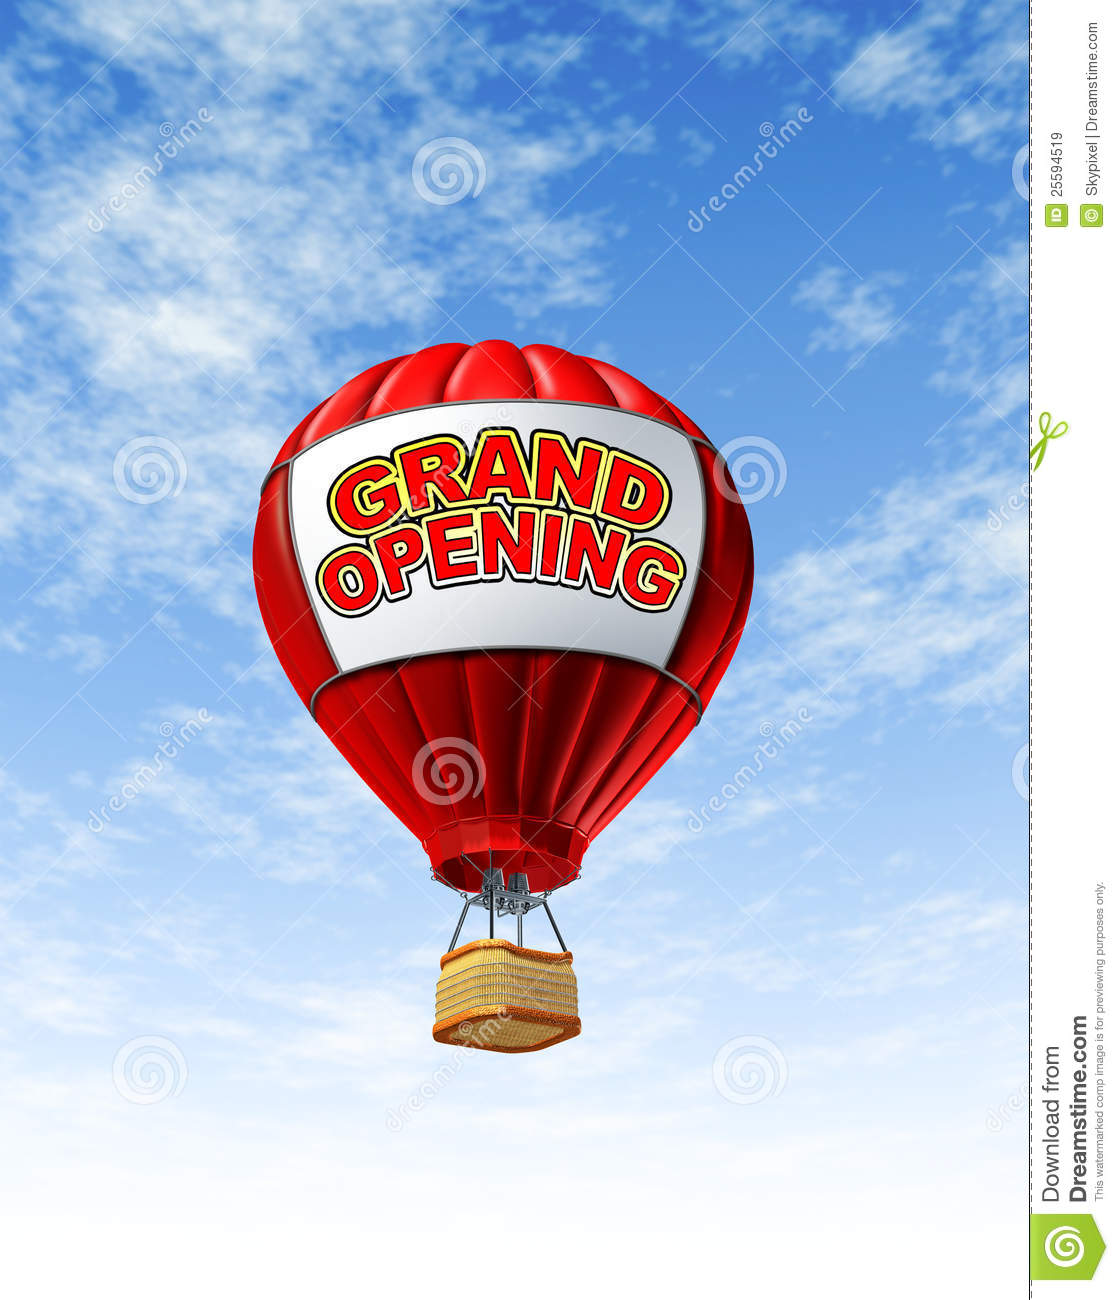 grand opening with a hot air balloon royalty free stock